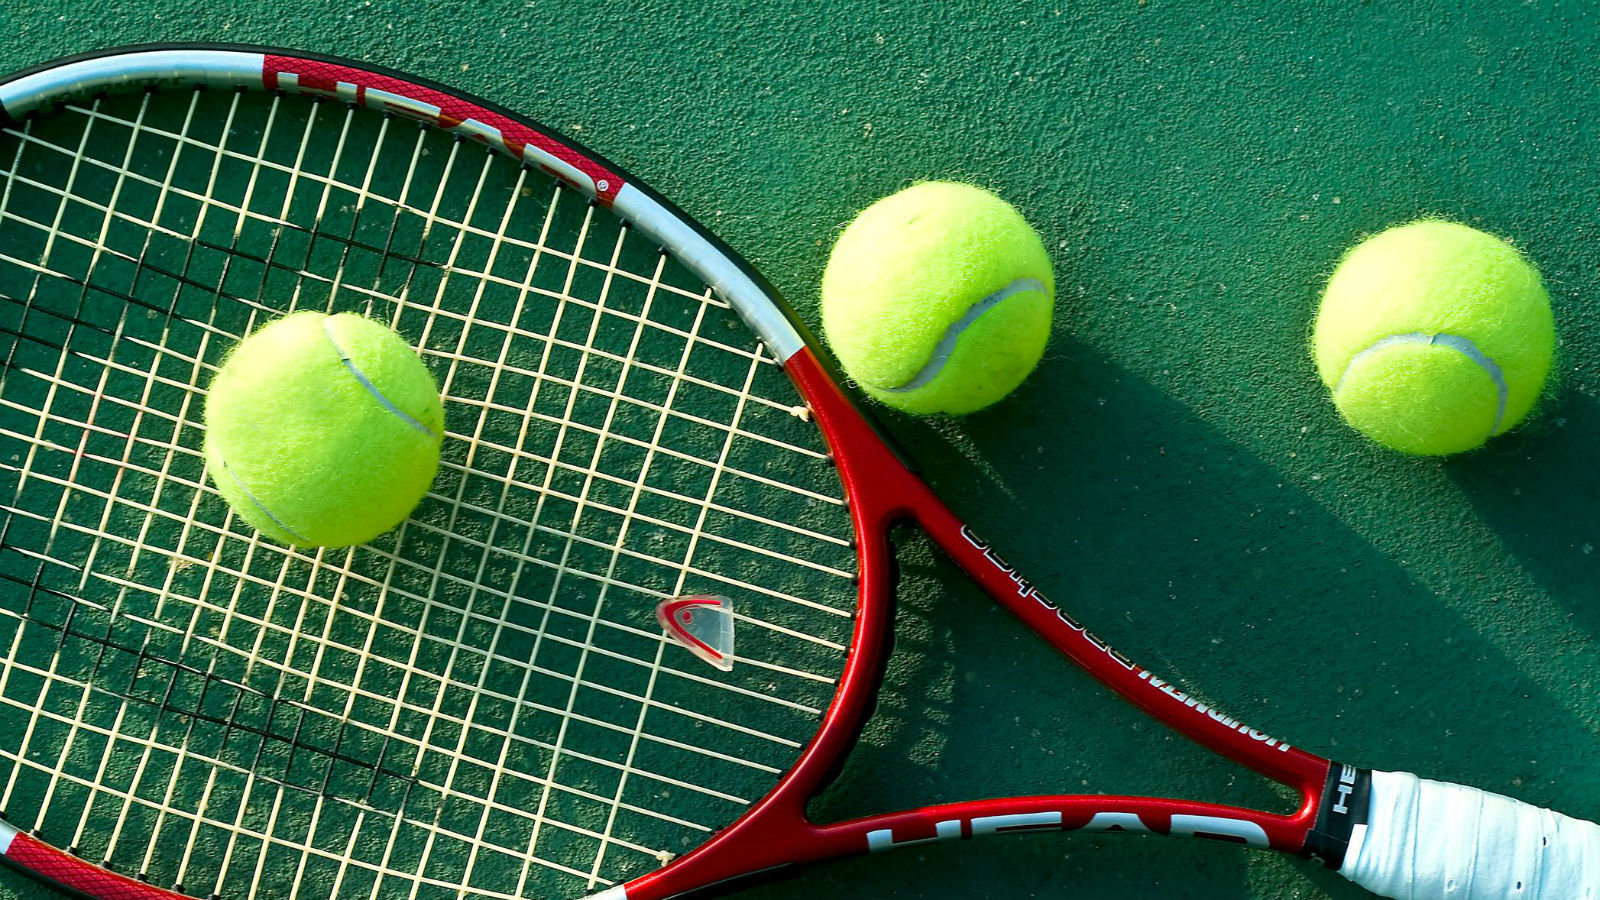 Get a good work out with Tennis at Le Royal Meridien Dubai